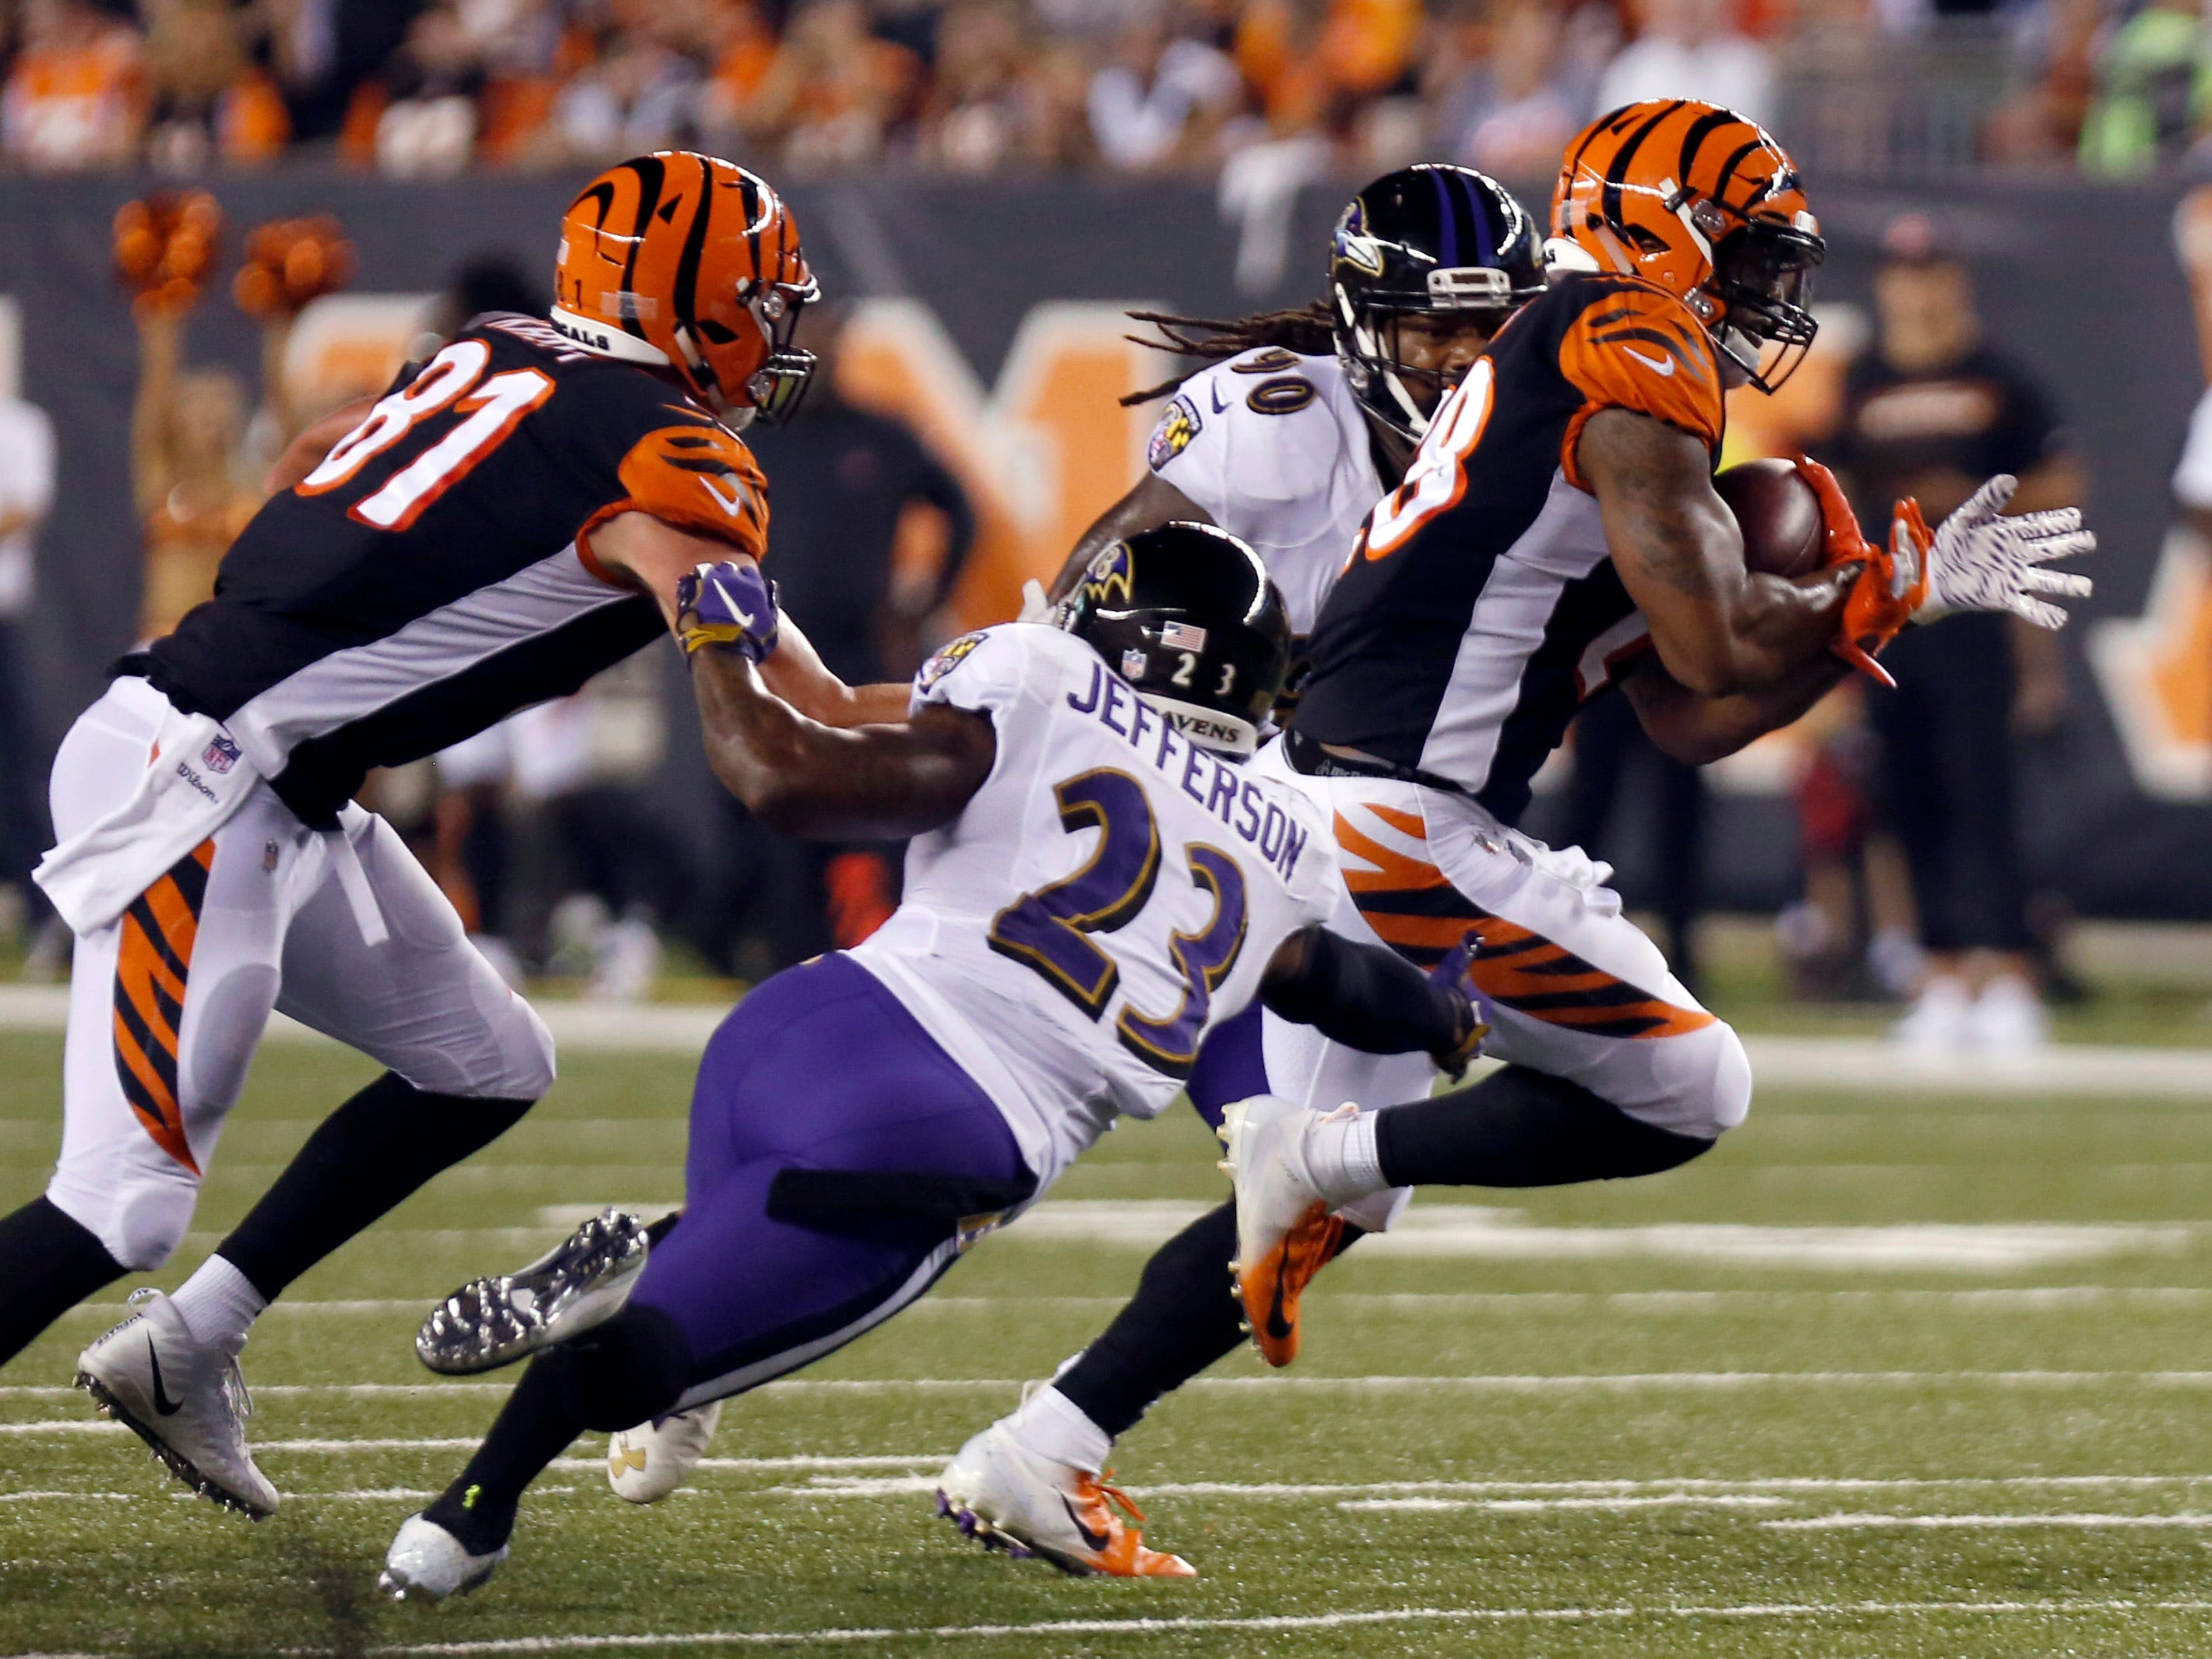 Bengals running back Joe Mixon runs against Ravens defensive back Tony Jefferson during the first half at Paul Brown Stadium.